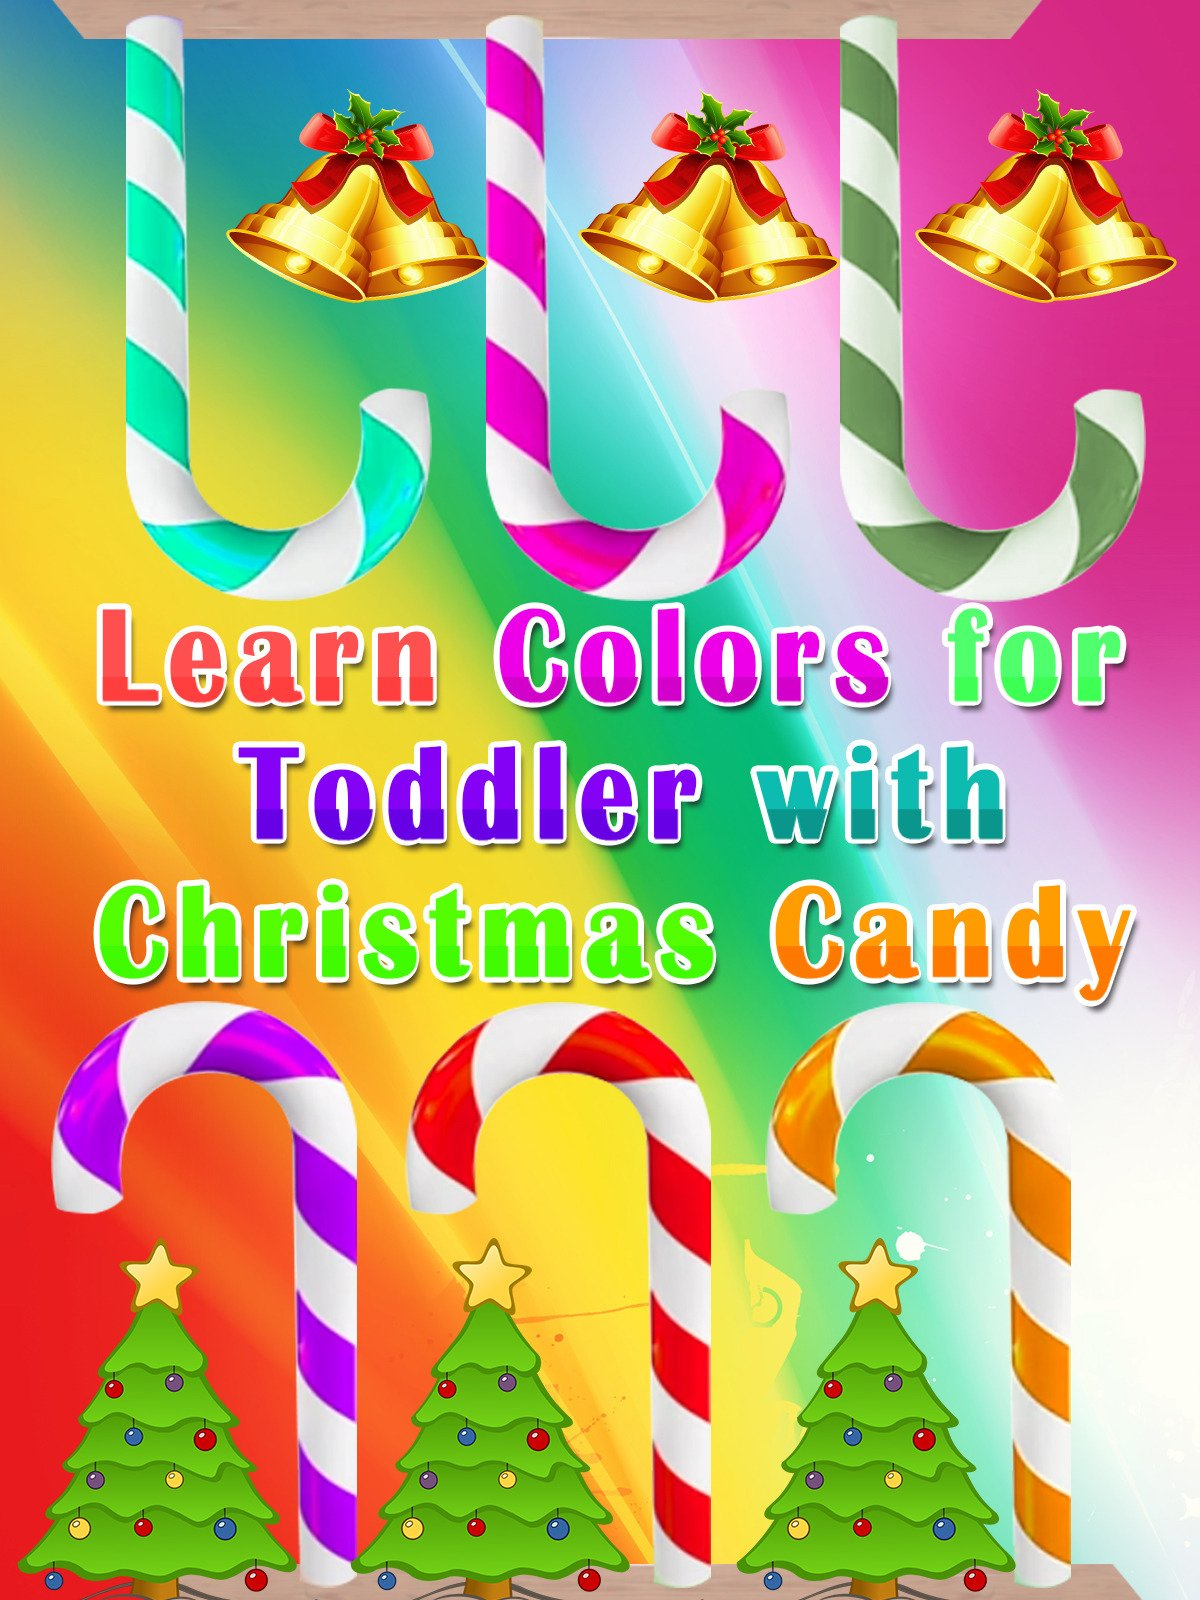 Learn Colors for Toddler with Christmas Candy